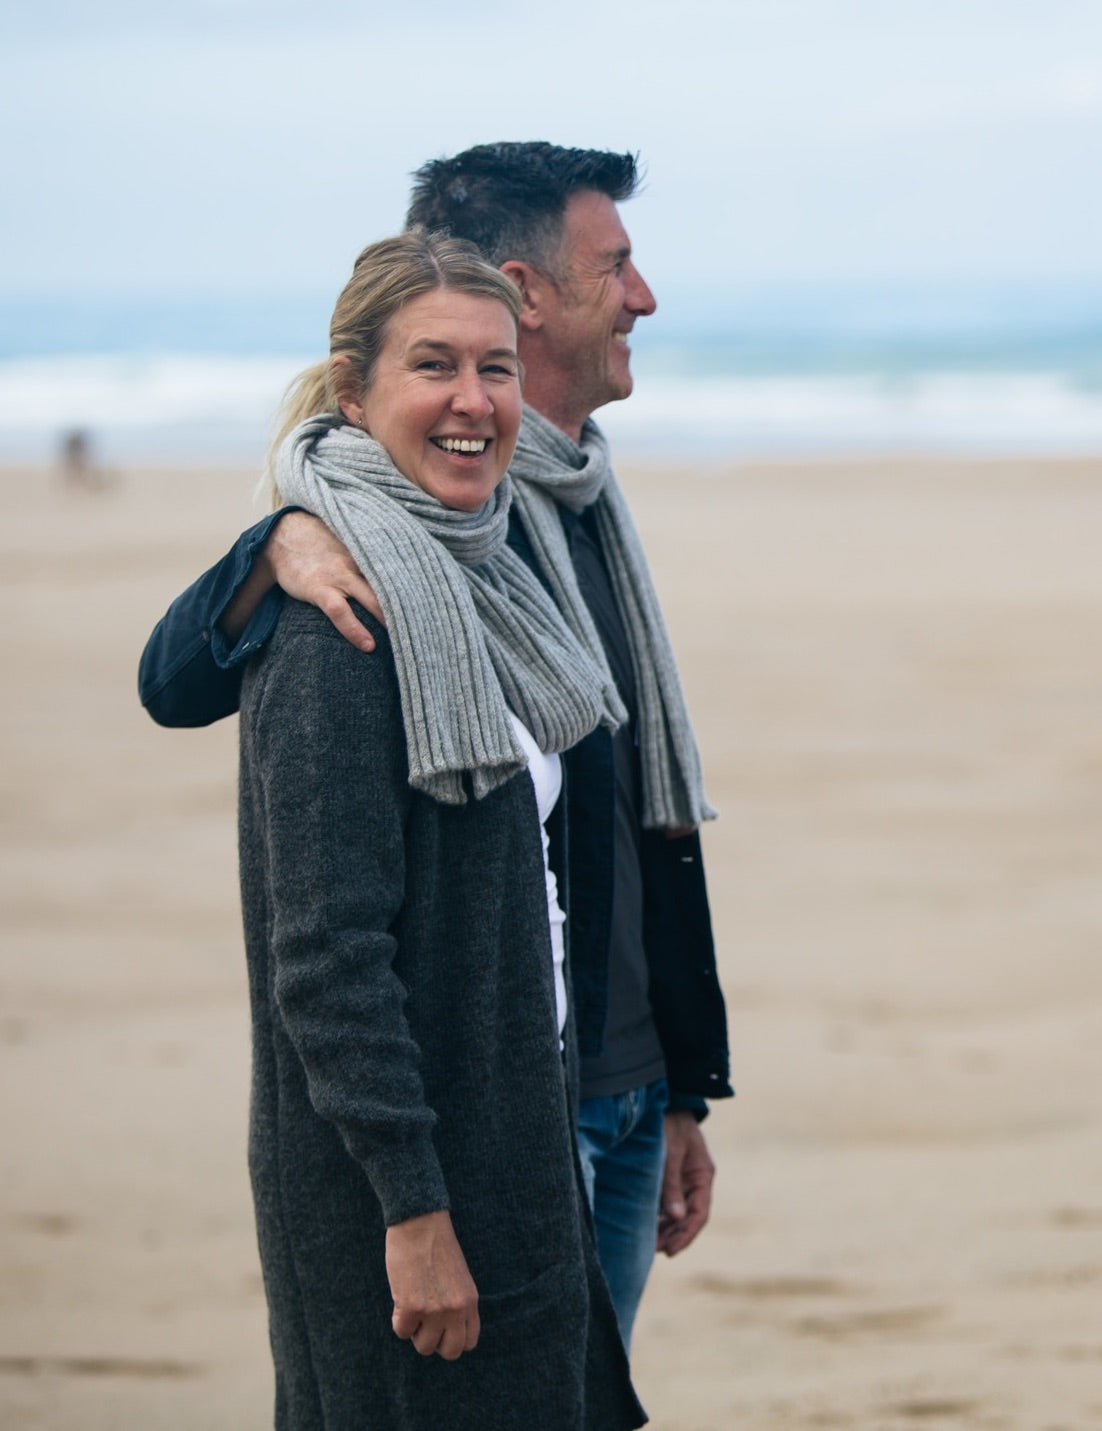 The Ally Bee Wide Rib Alpaca scarf is made from sustainable low impact British alpaca yarn and is knitted in Hawick, Scotland, available now at ally-bee.com